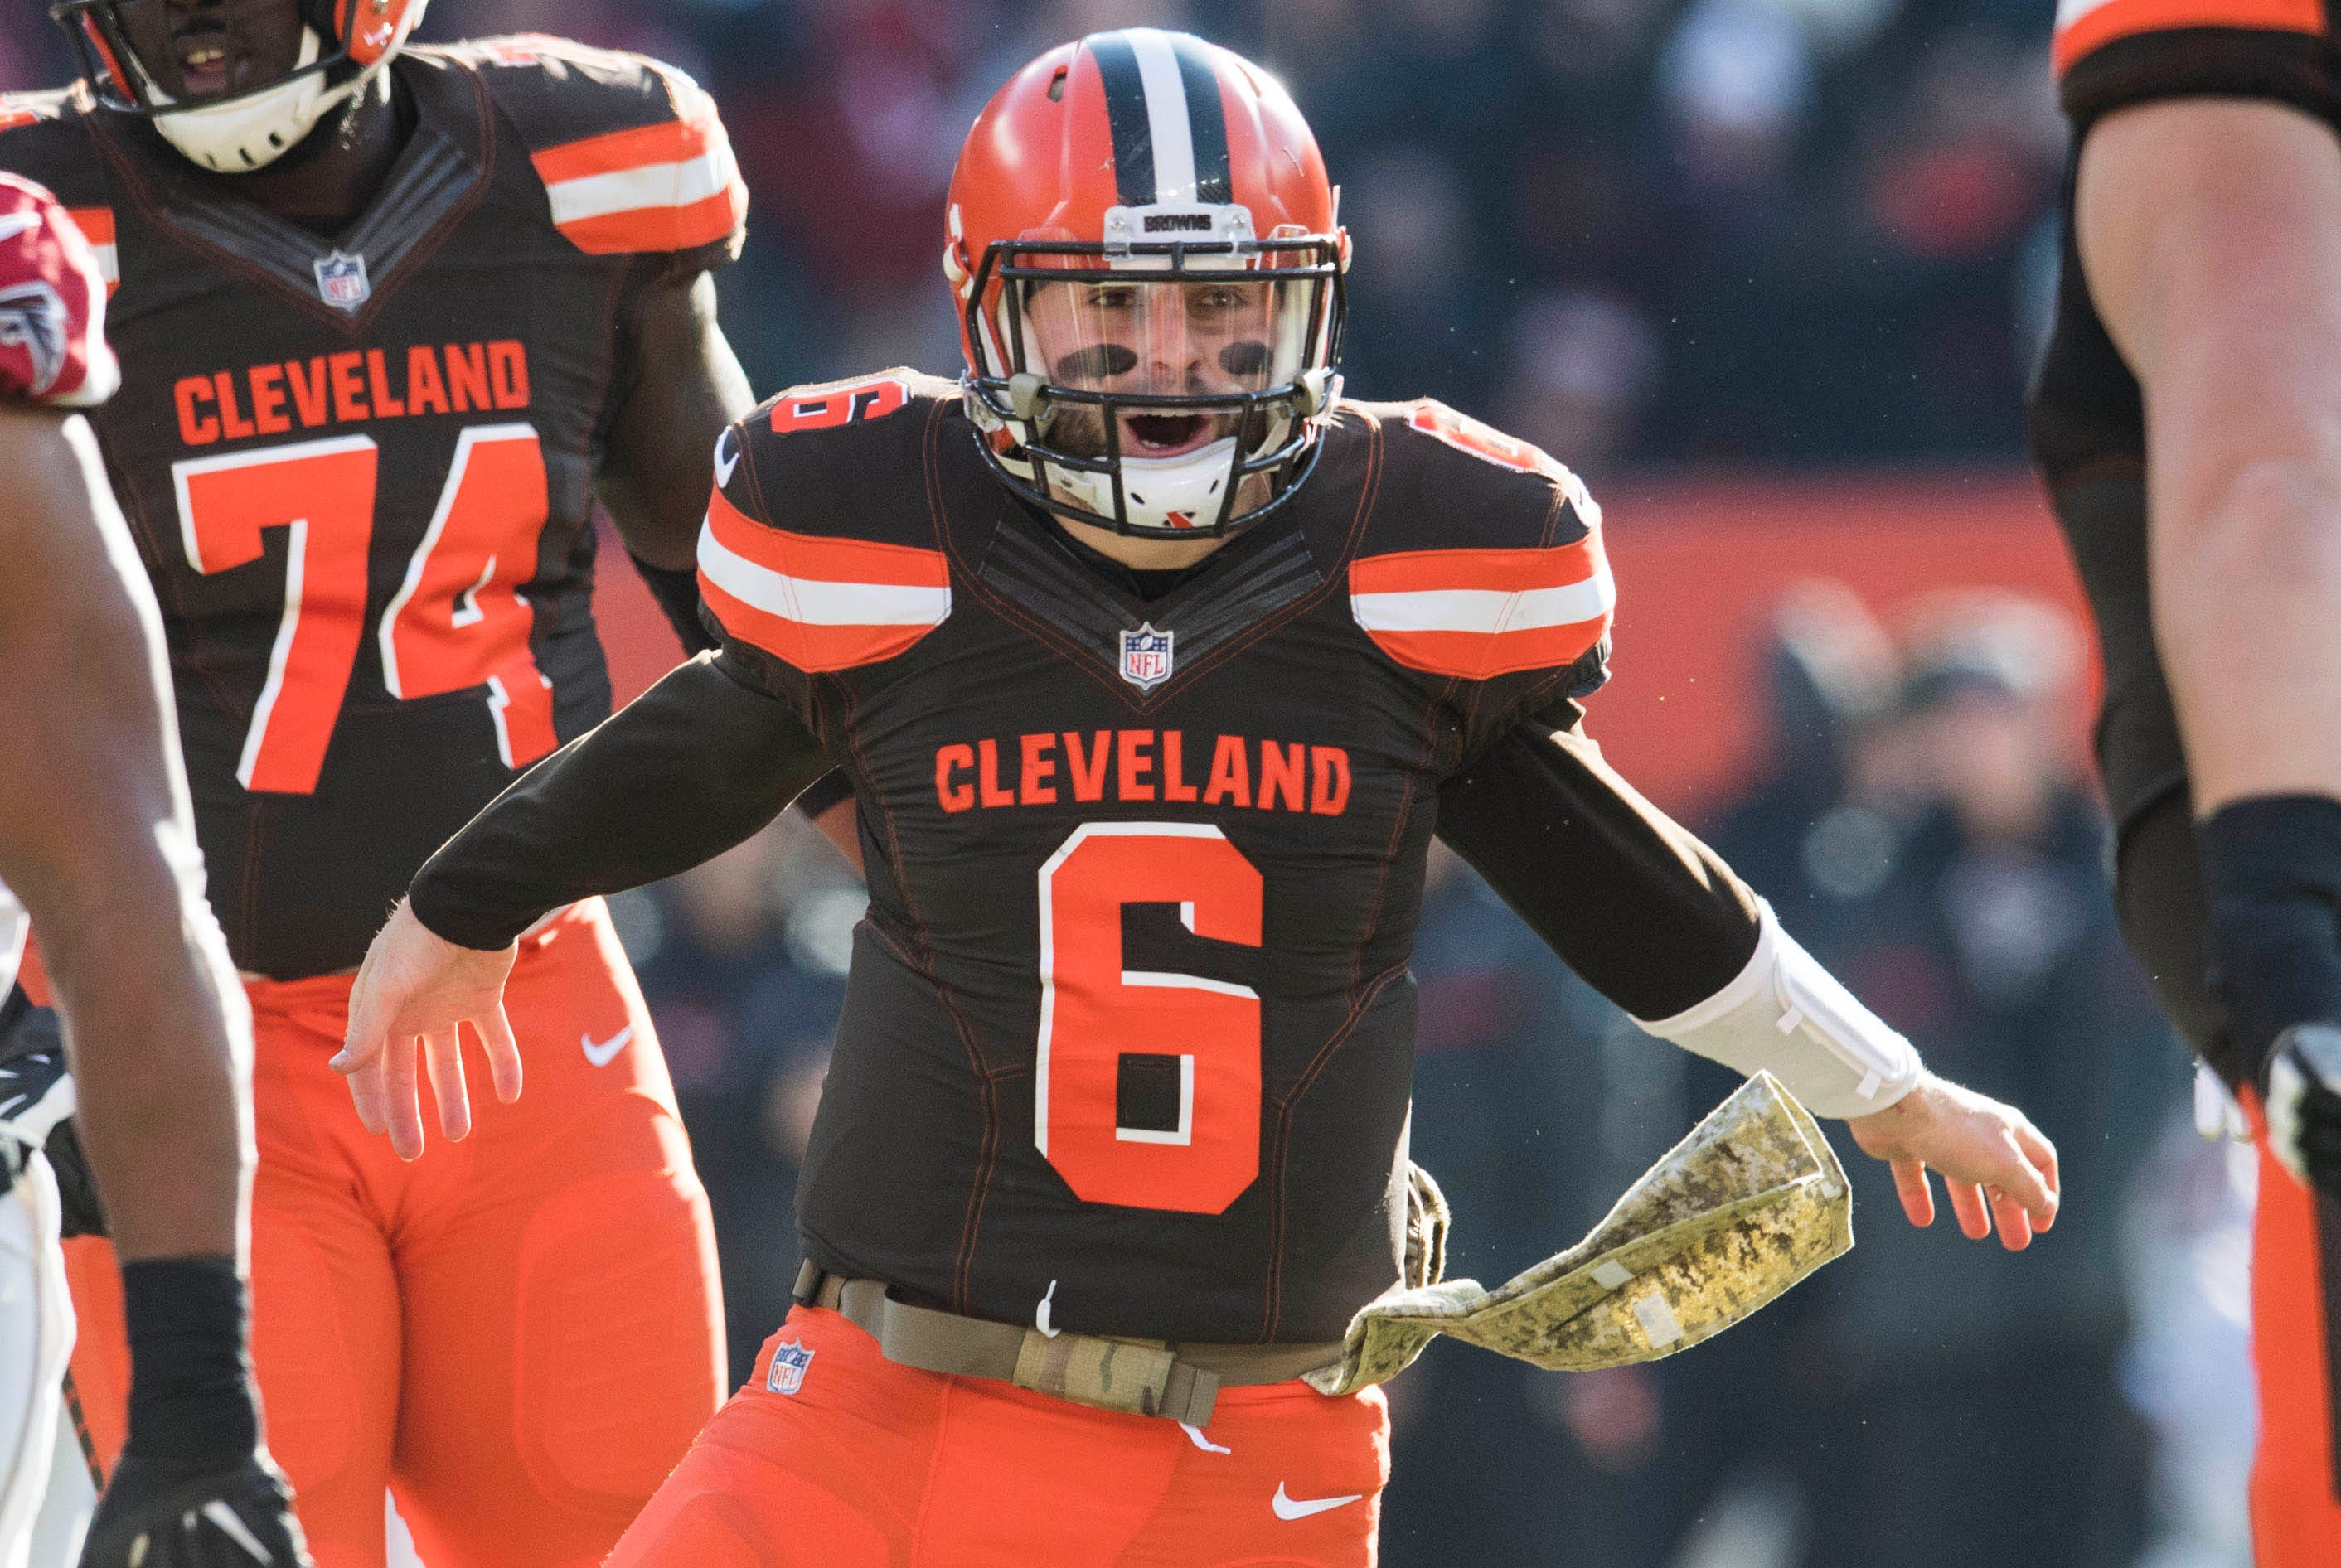 Baker Mayfield may be young. He may be brash. But he's good -- and he's got the Browns on the rise